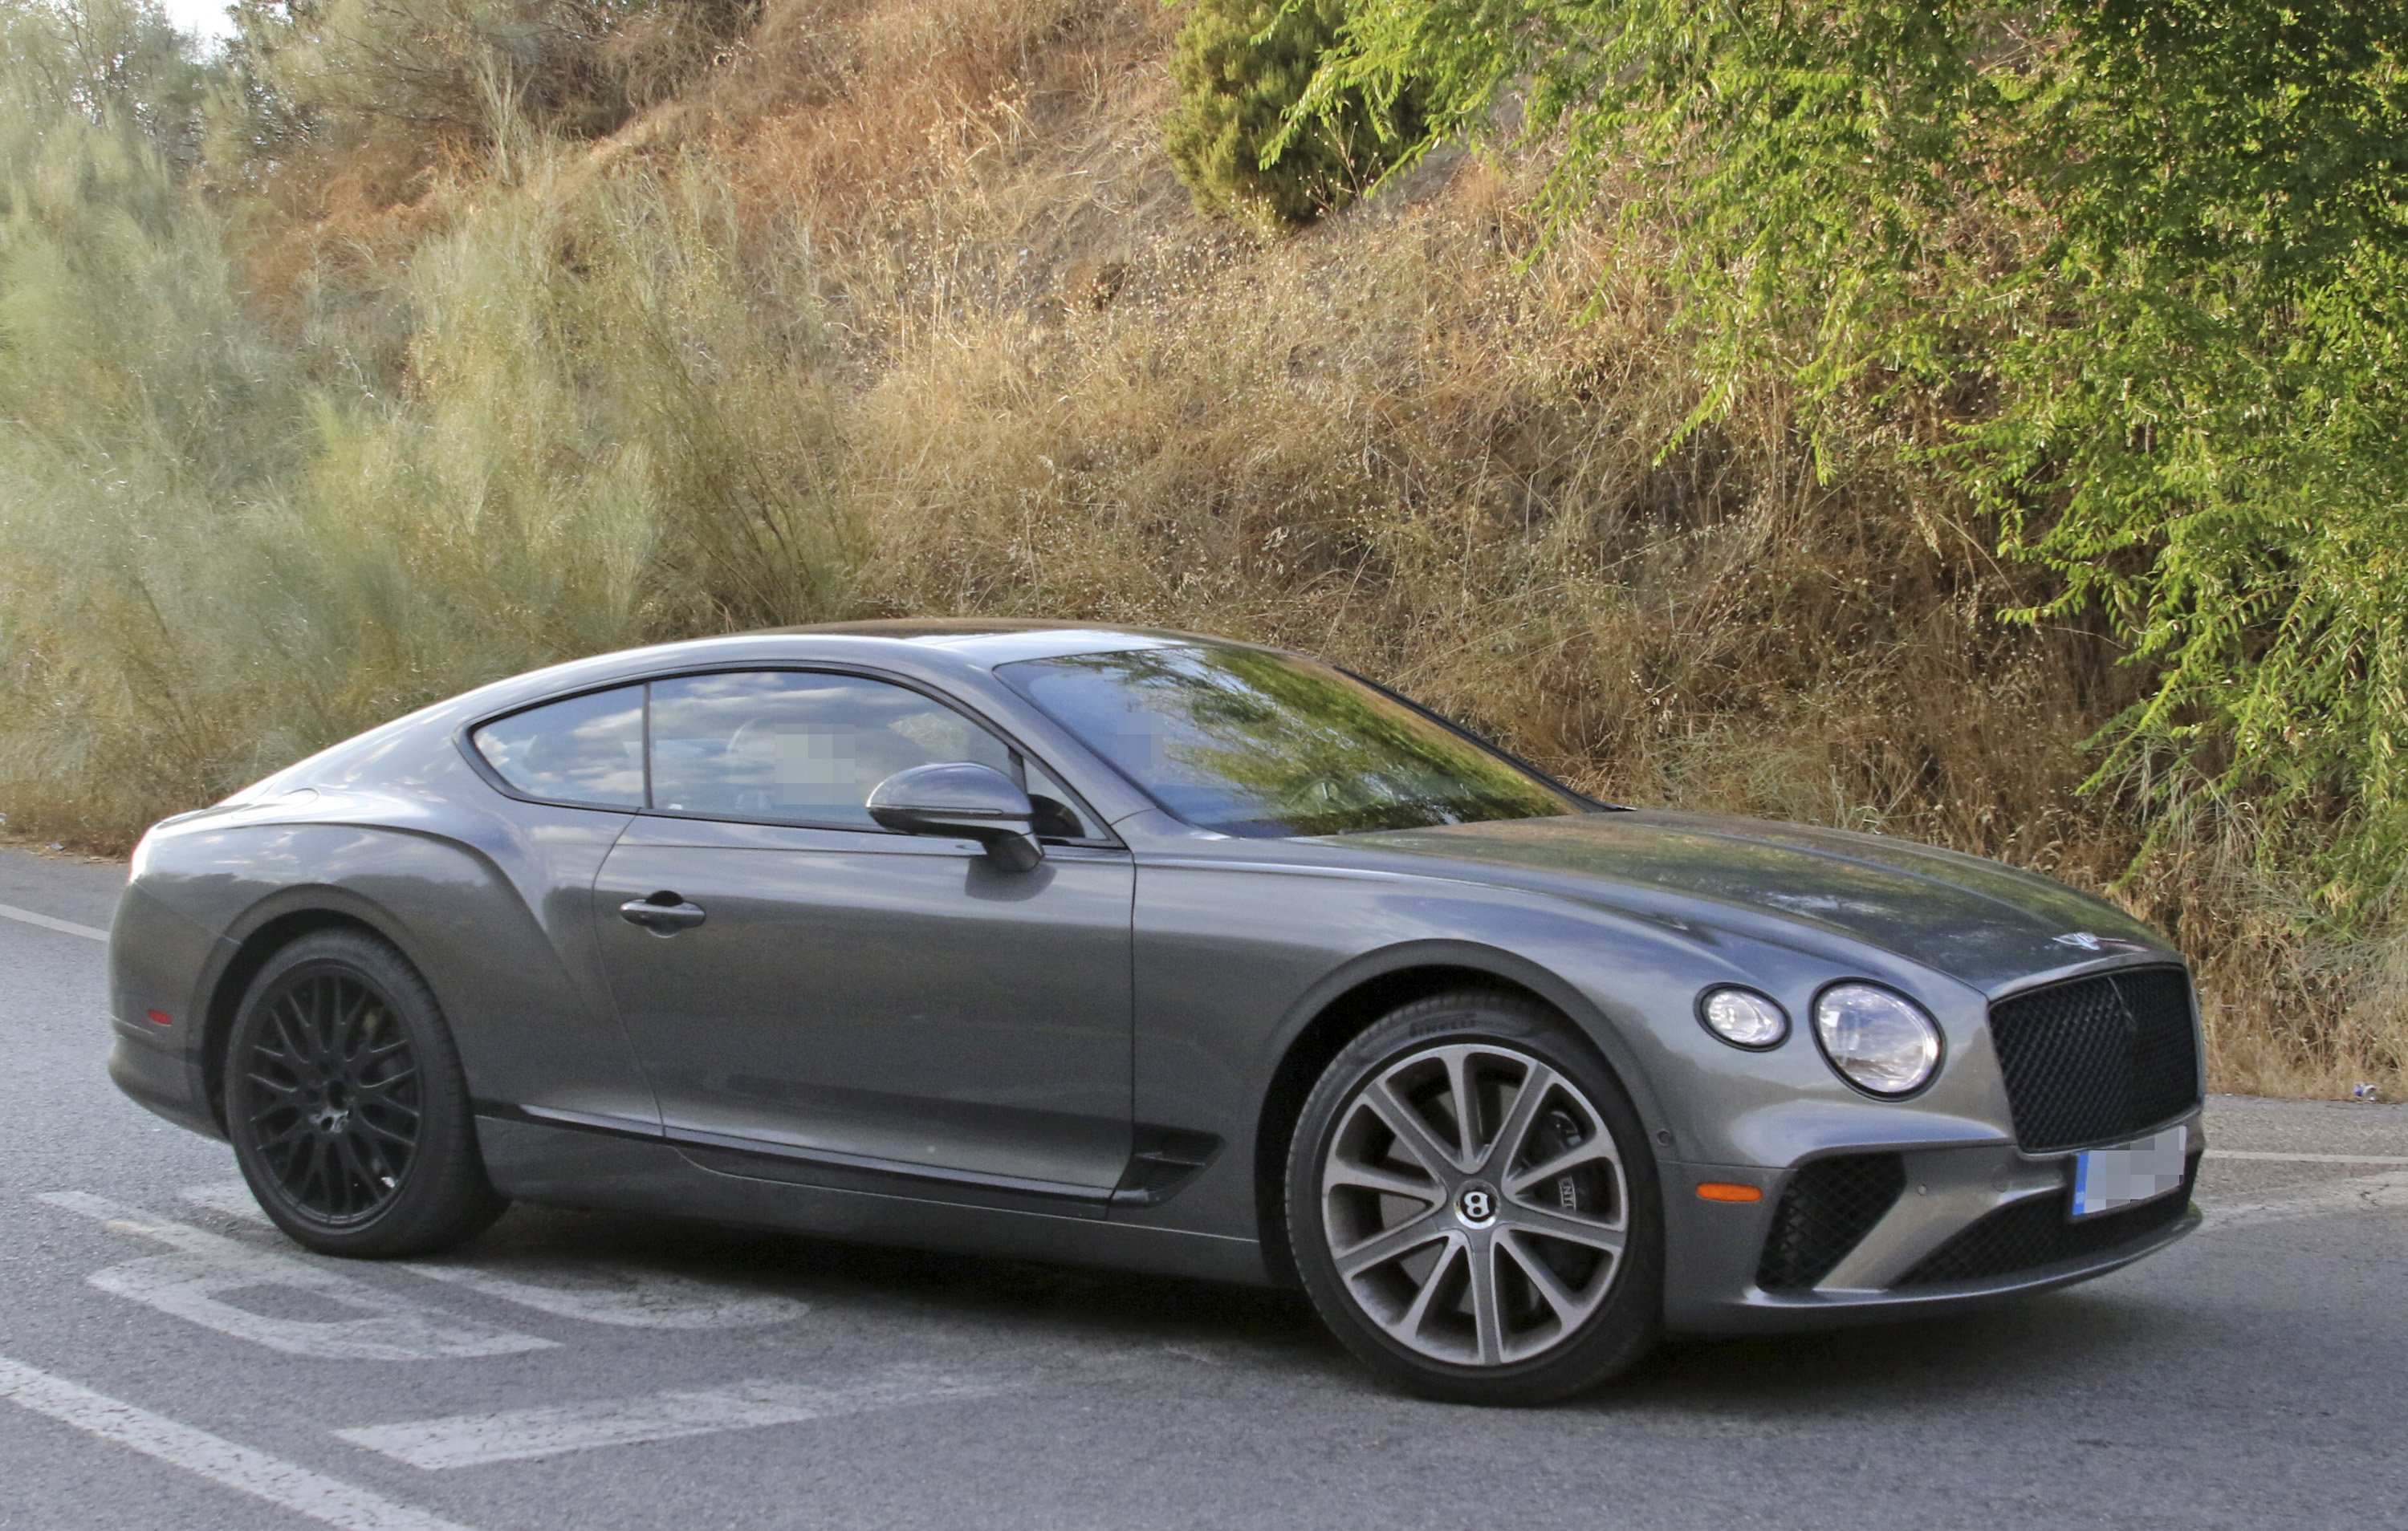 48 The Best 2019 Bentley Gt V8 Redesign And Concept